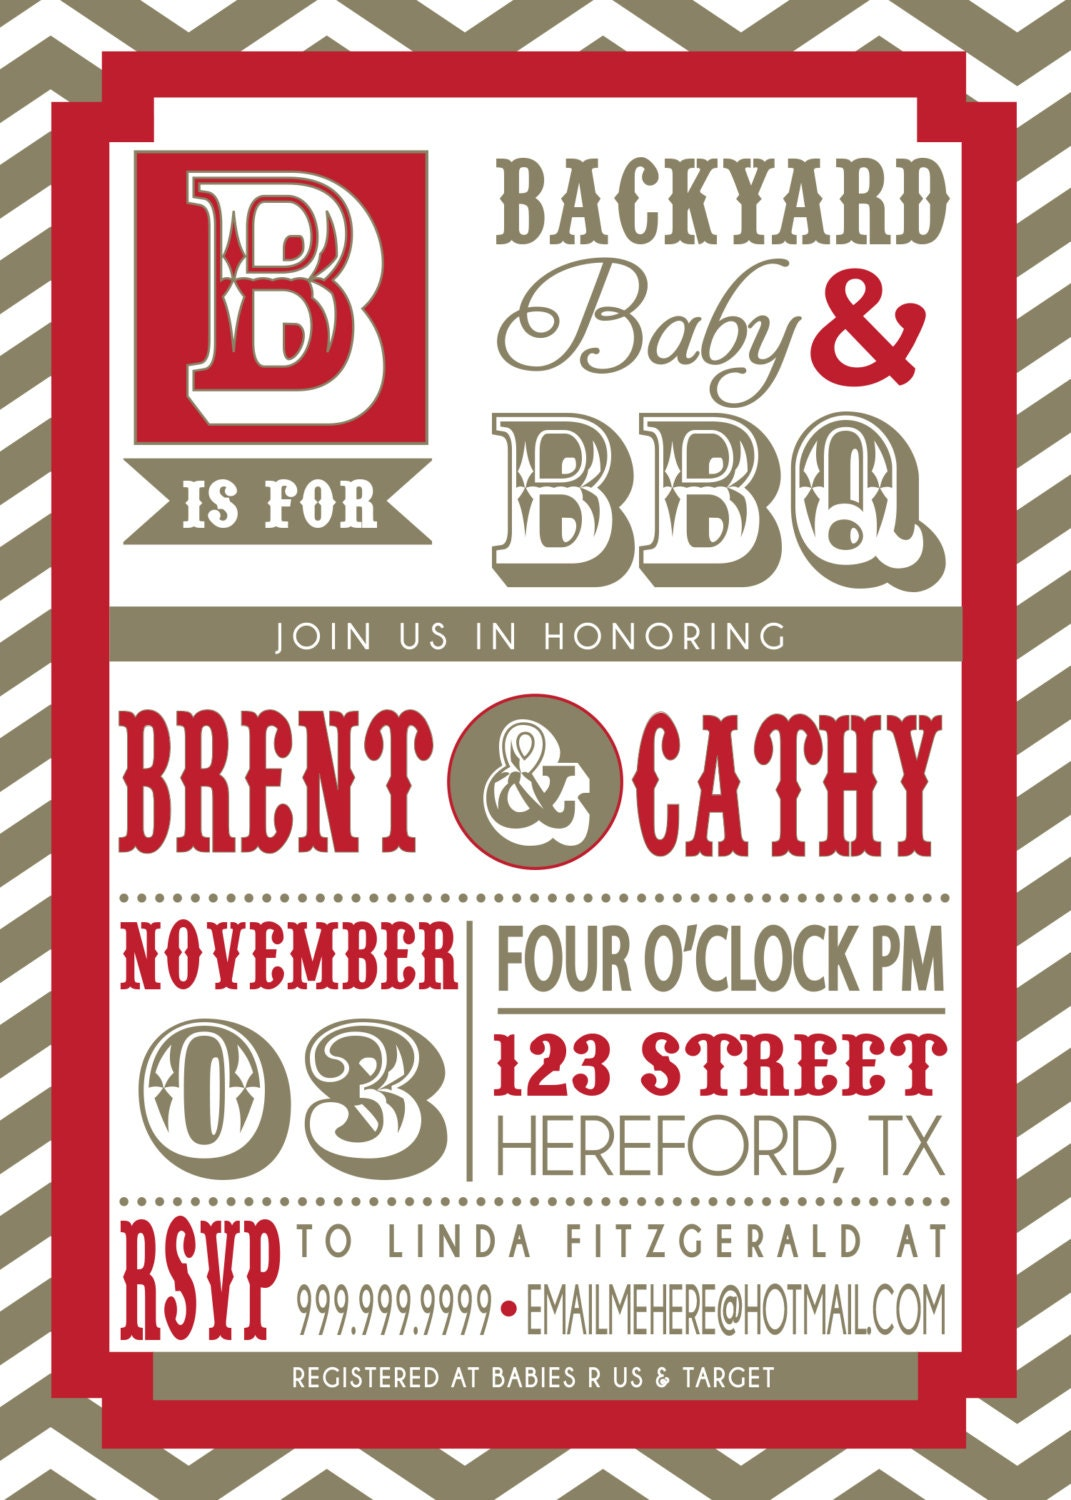 couples bbq baby shower invitation by sldesignteam on etsy